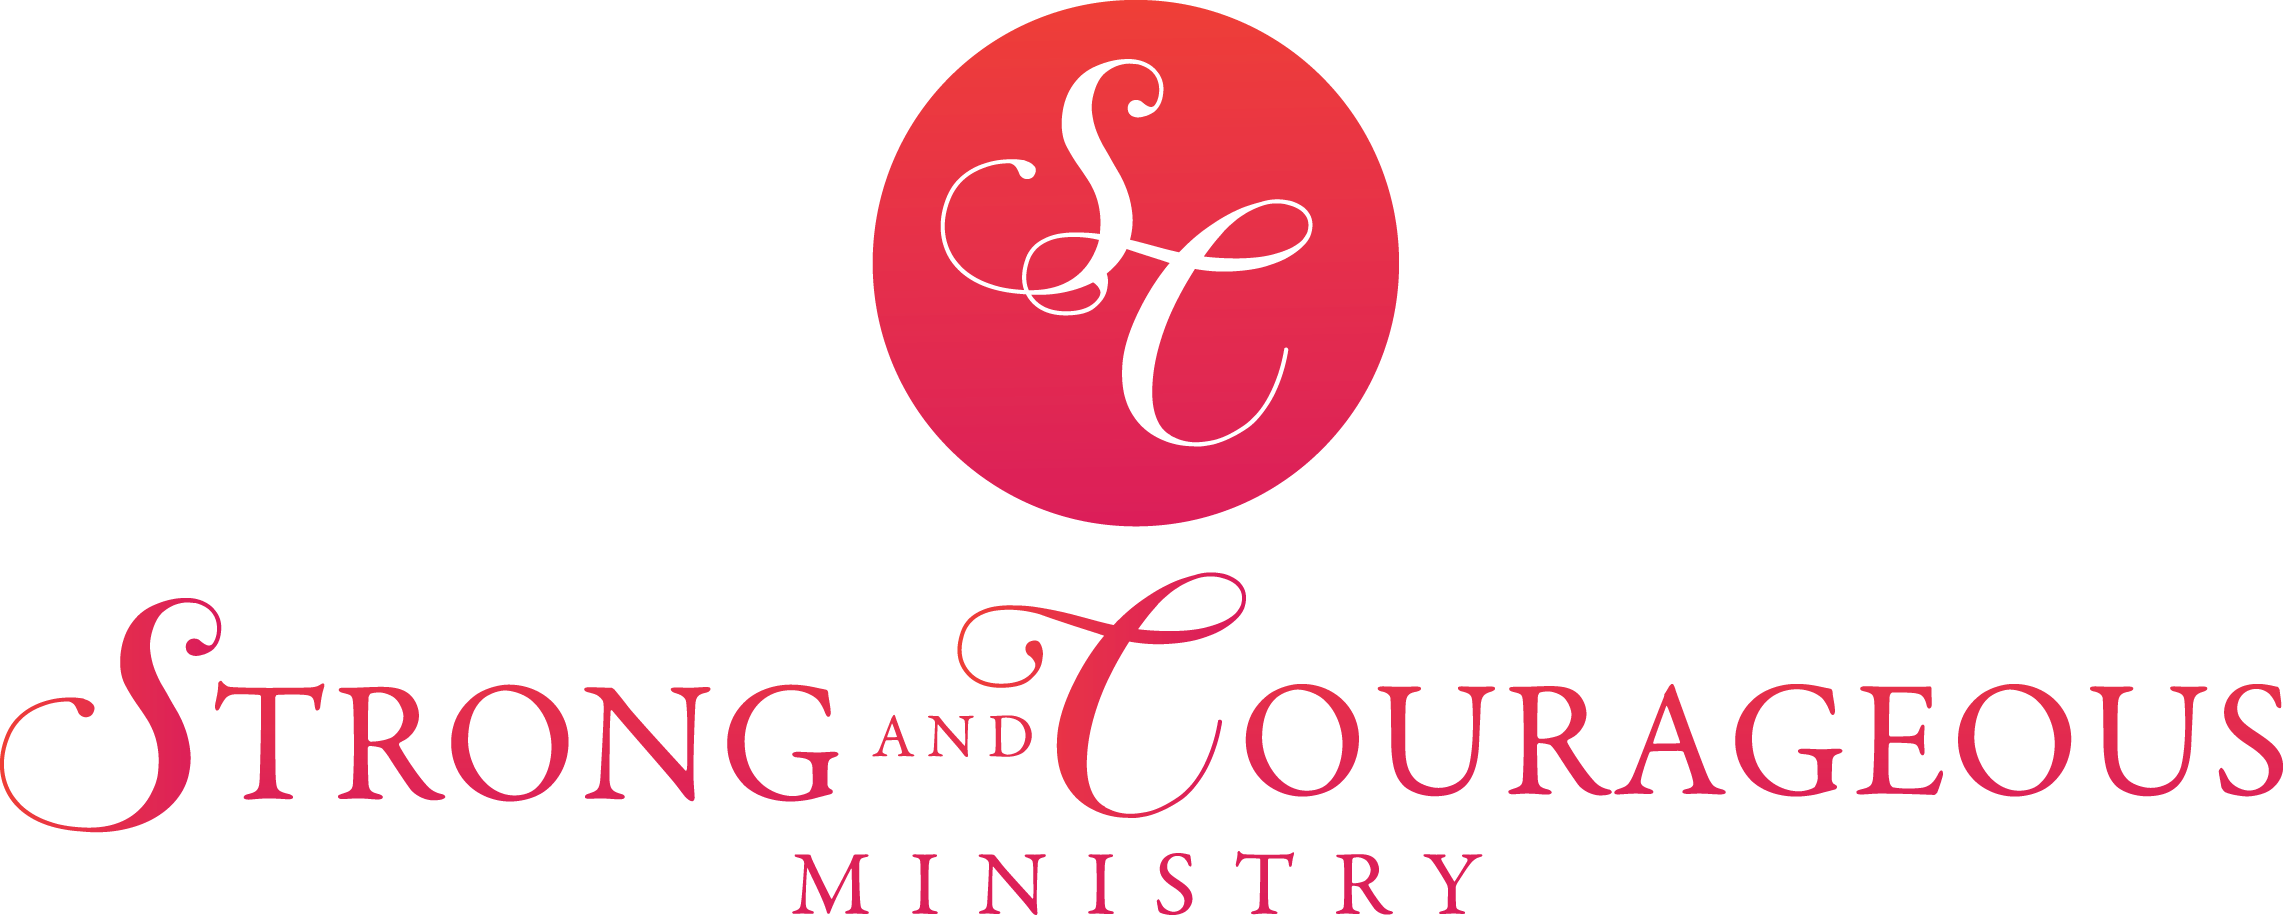 Strong &ampd; Courageous Ministries